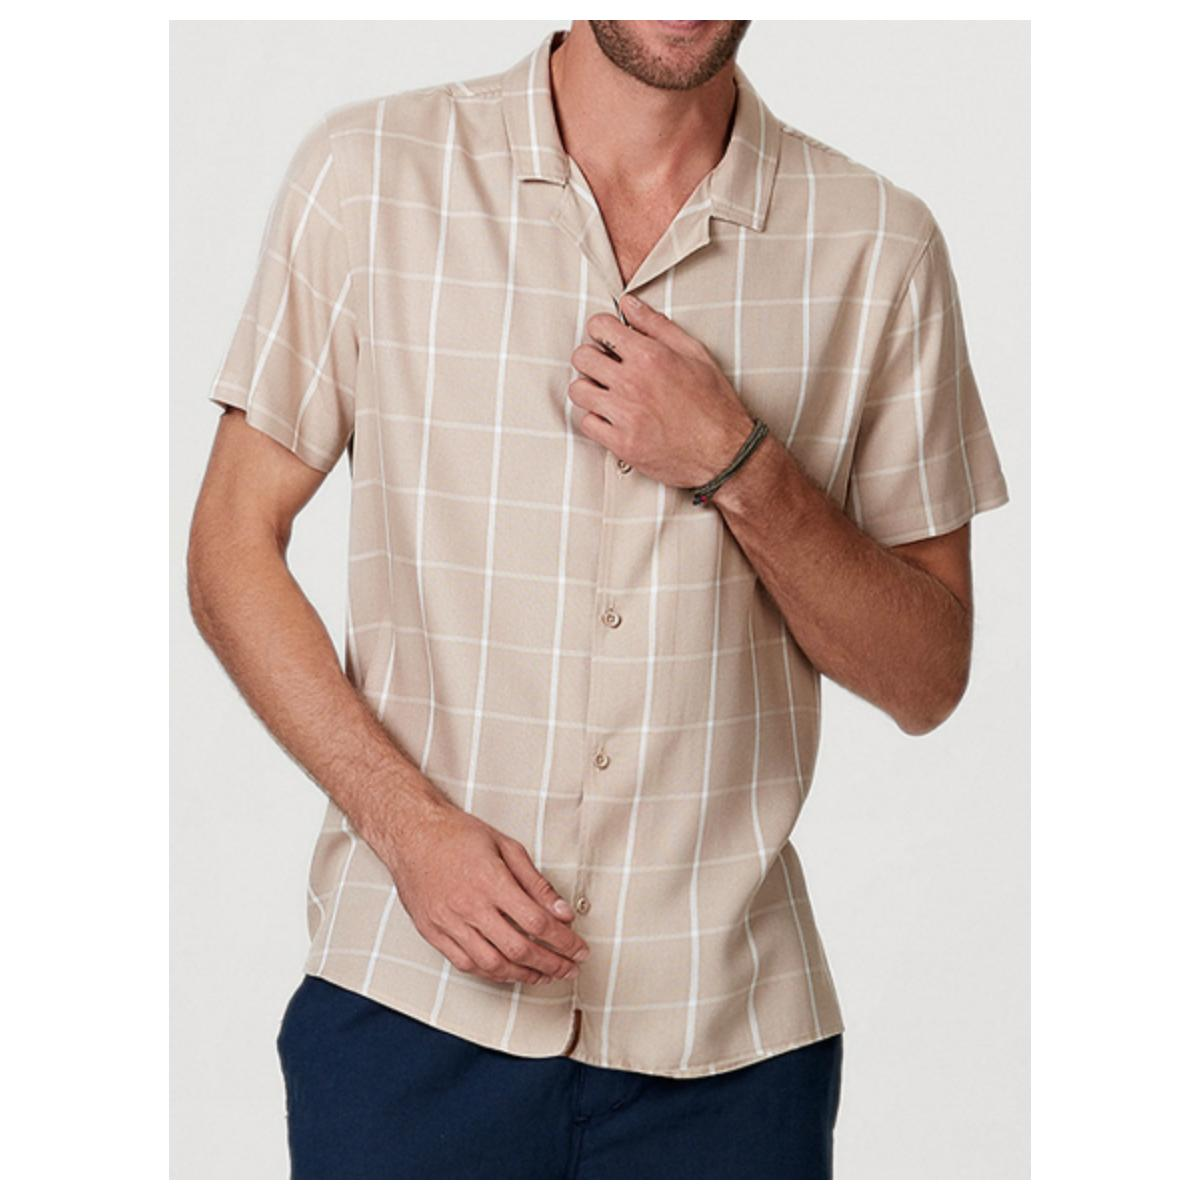 Camisa Masculina Hering H2je 1aen Bege Escuro